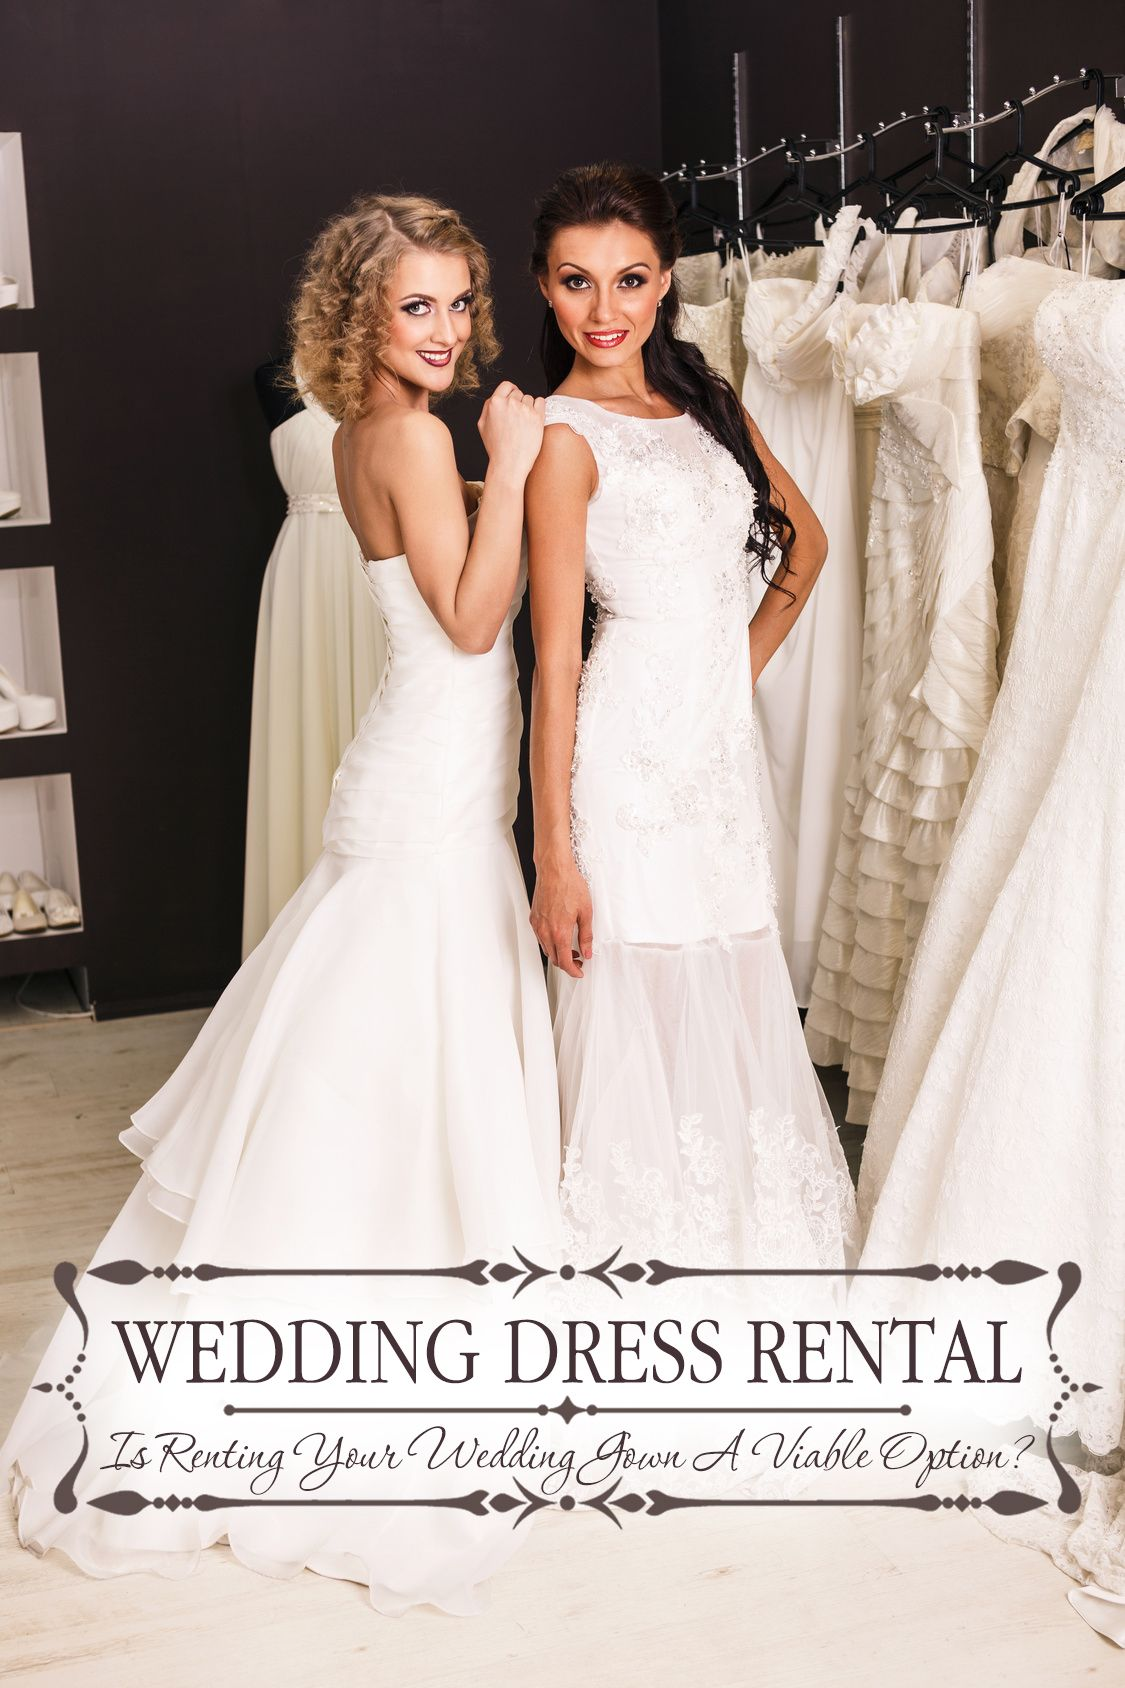 Wedding Dress Rental: Is Renting Your Wedding Gown A Viable Option ...